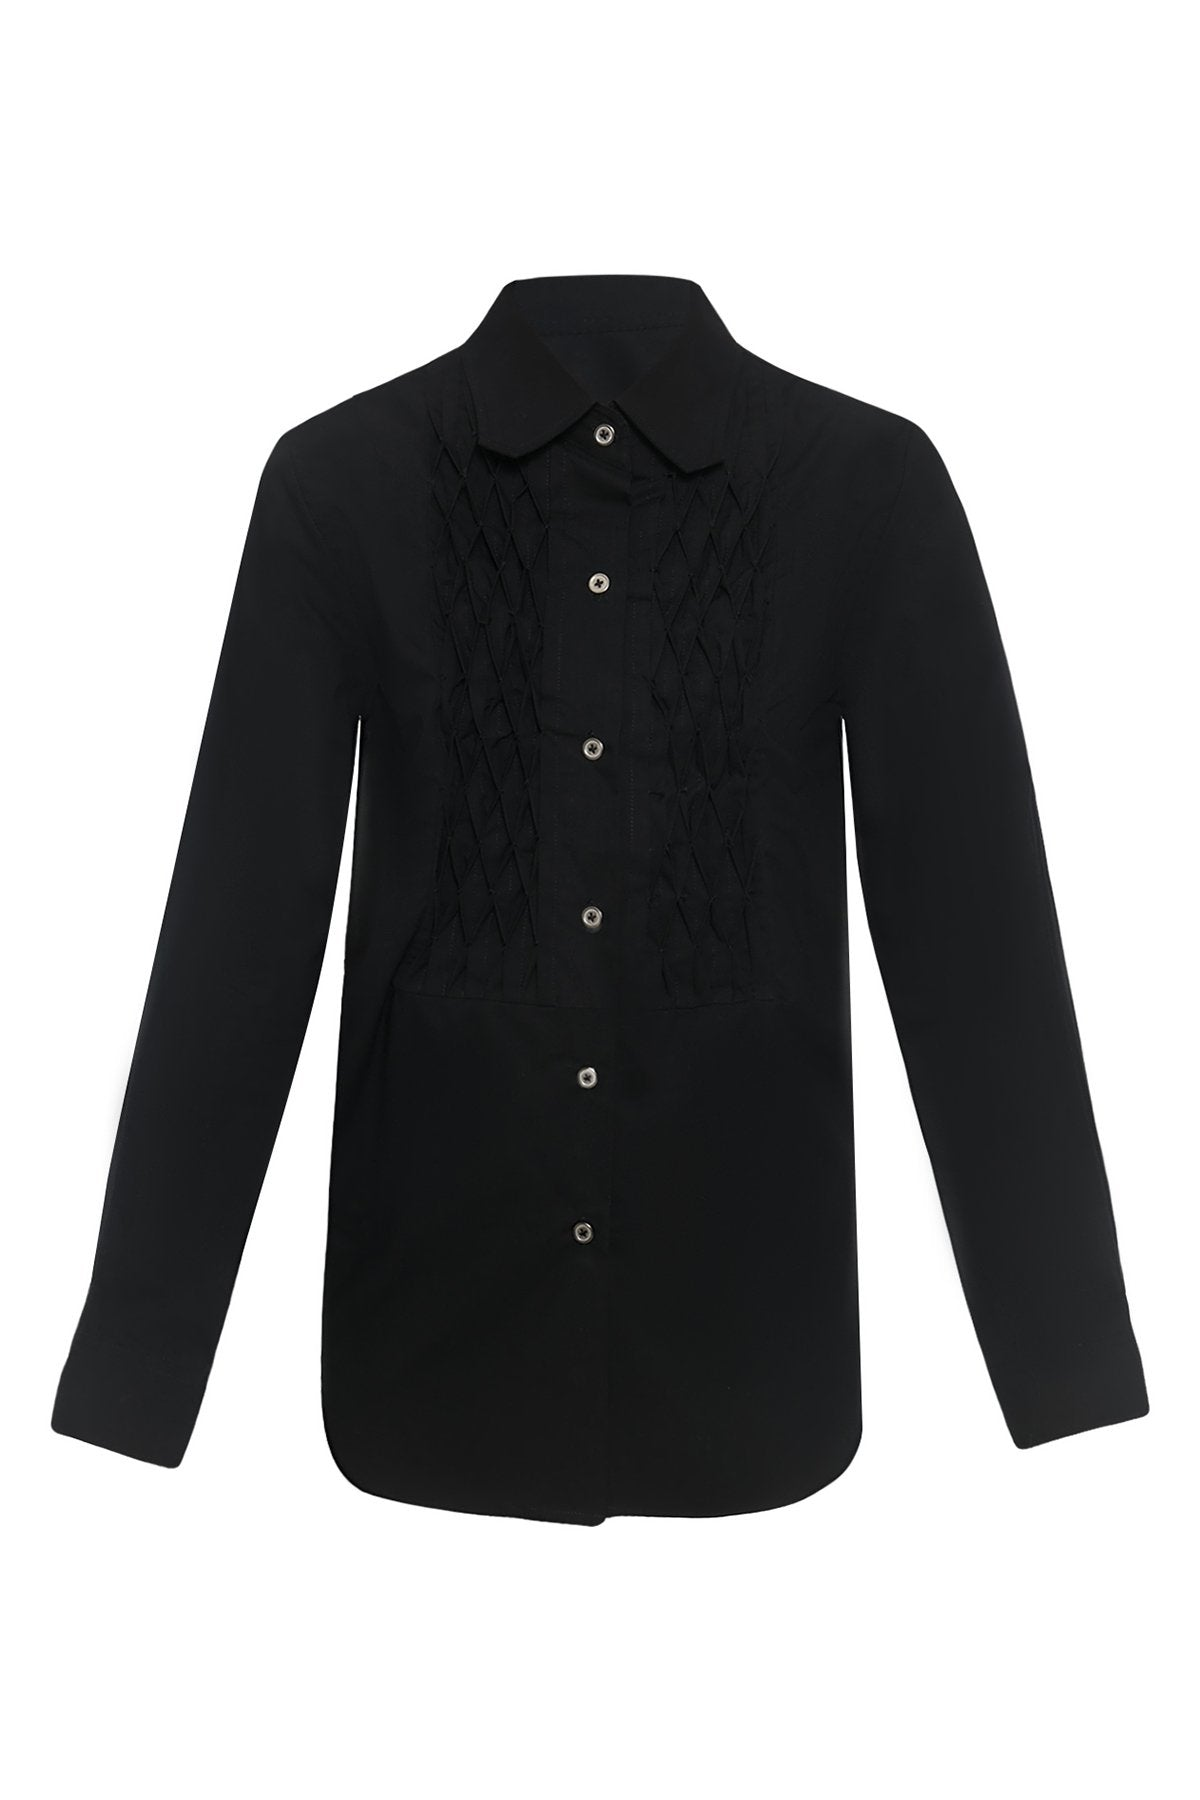 Honeycomb Front Panel Cotton Shirtdress in Black